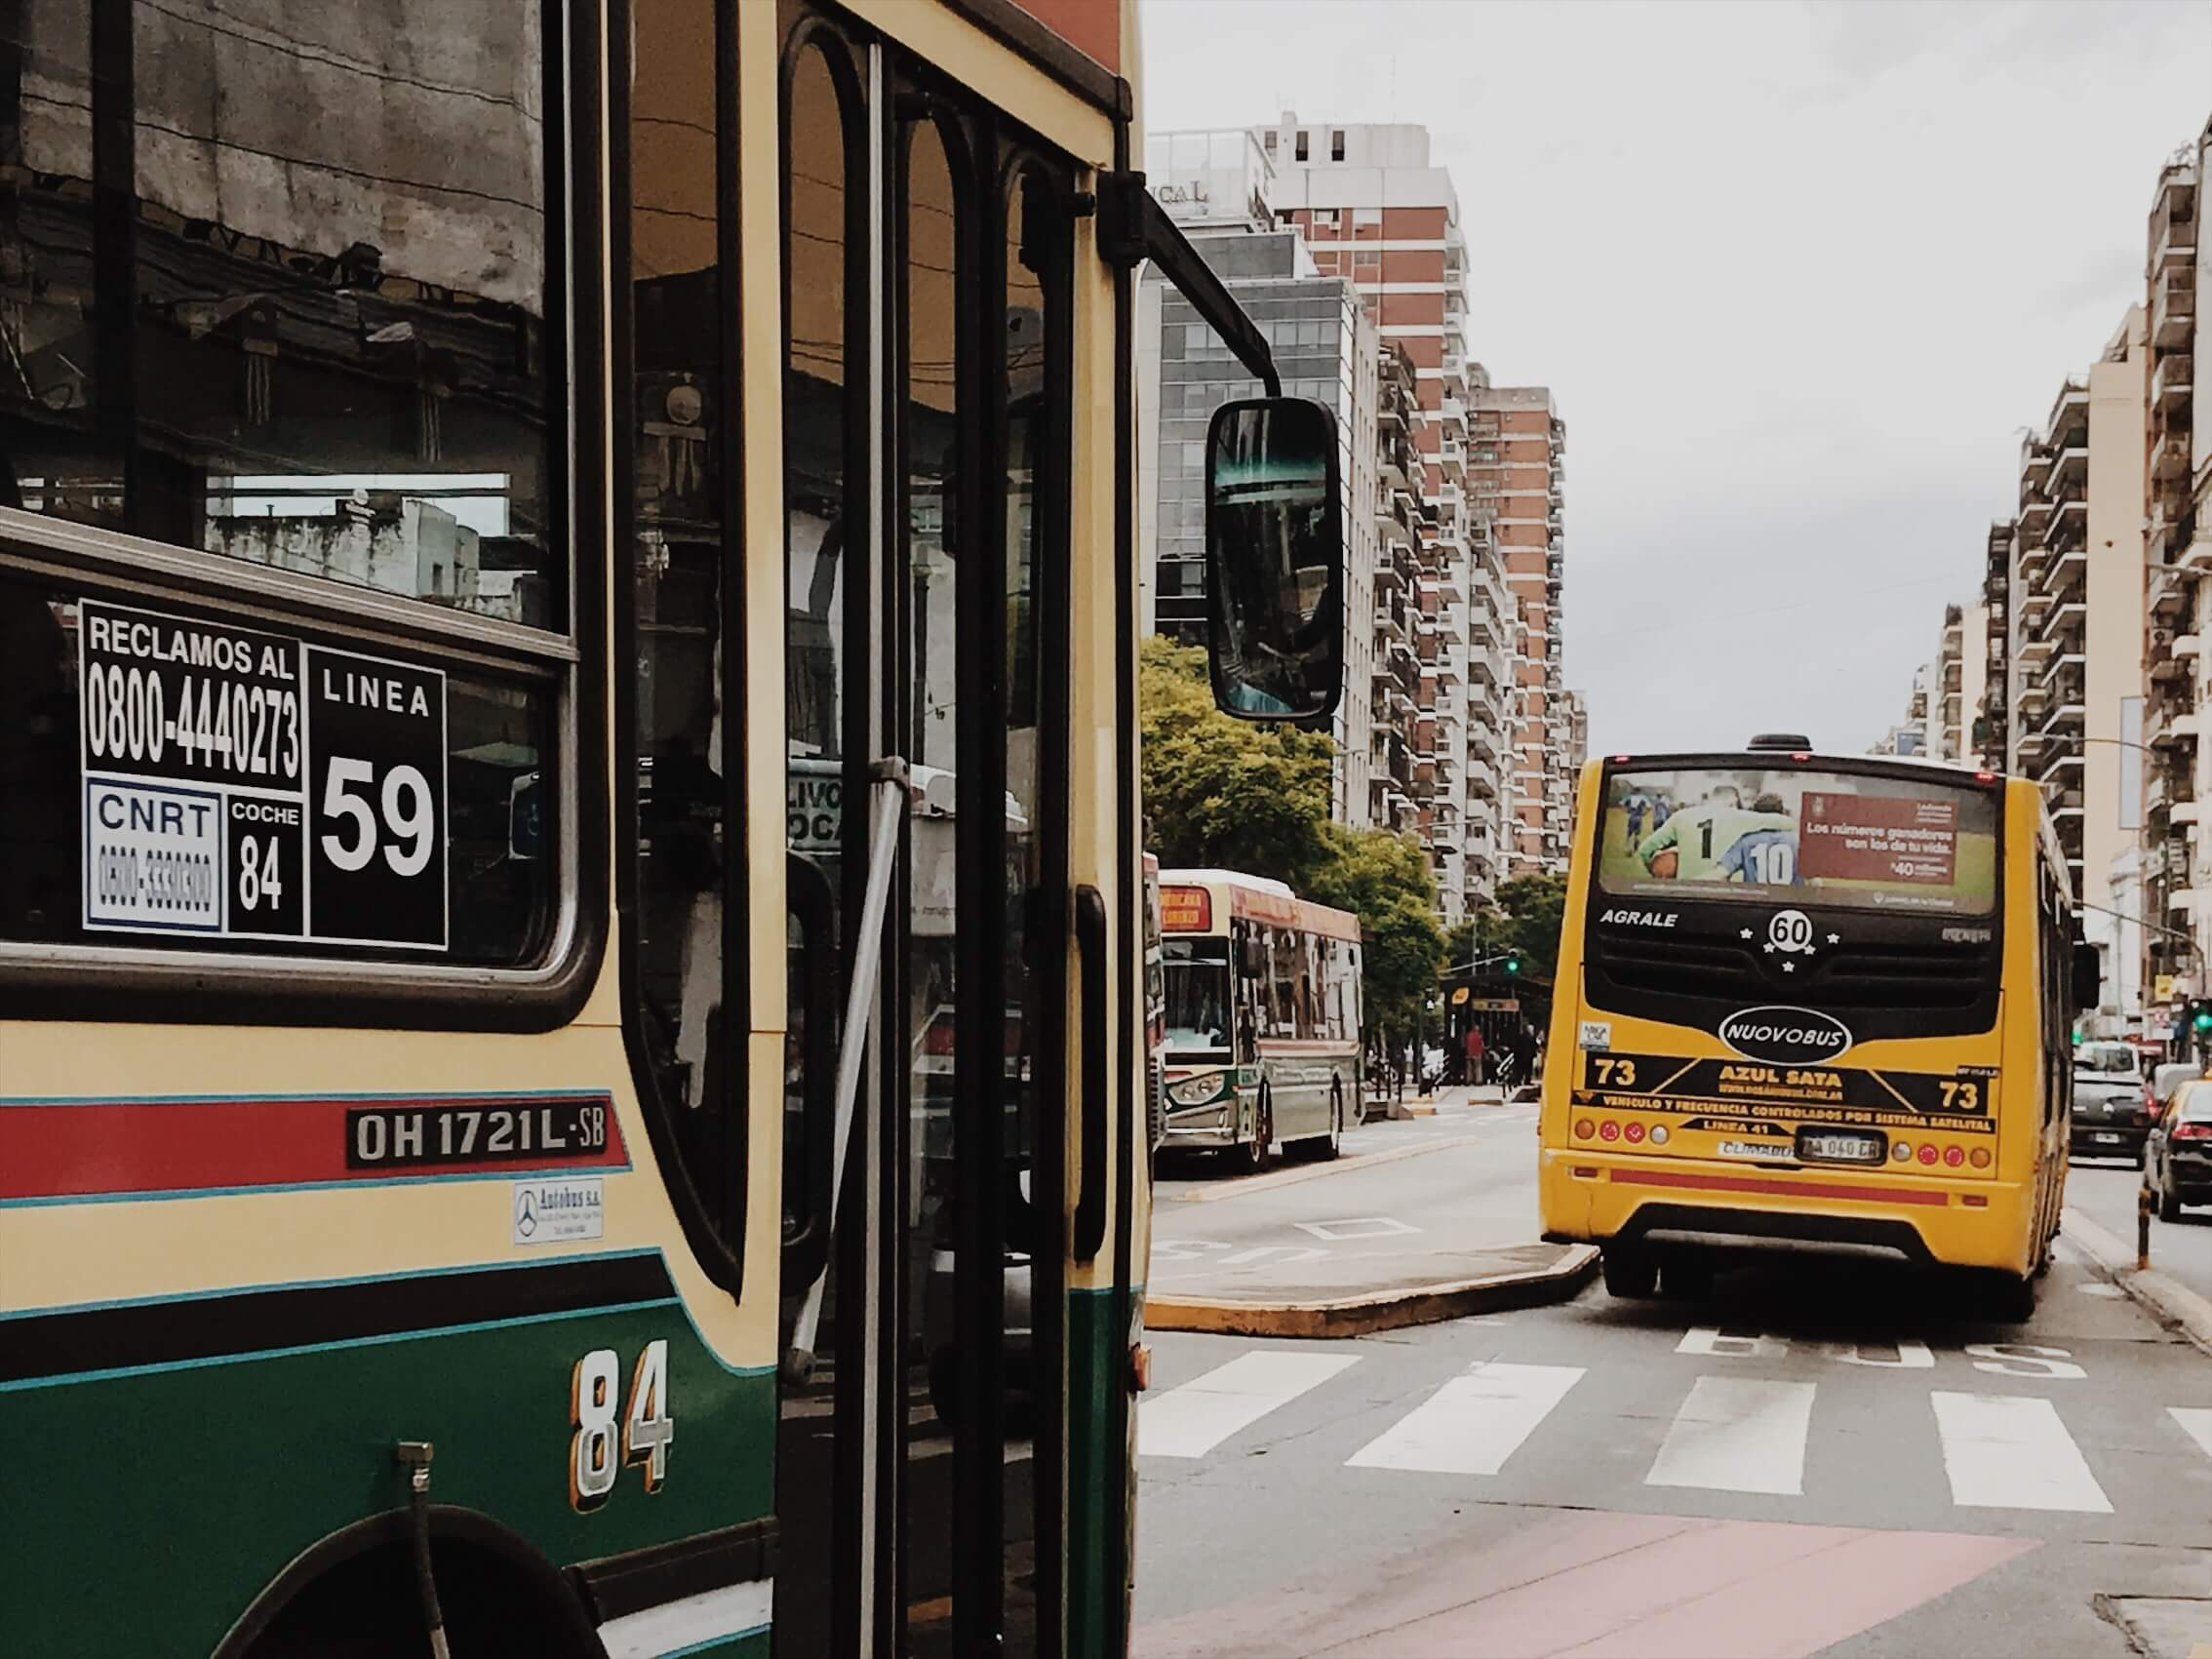 City buses wind down a avenue lined by tall apartment towers form a large part of Buenos Aires public transportation